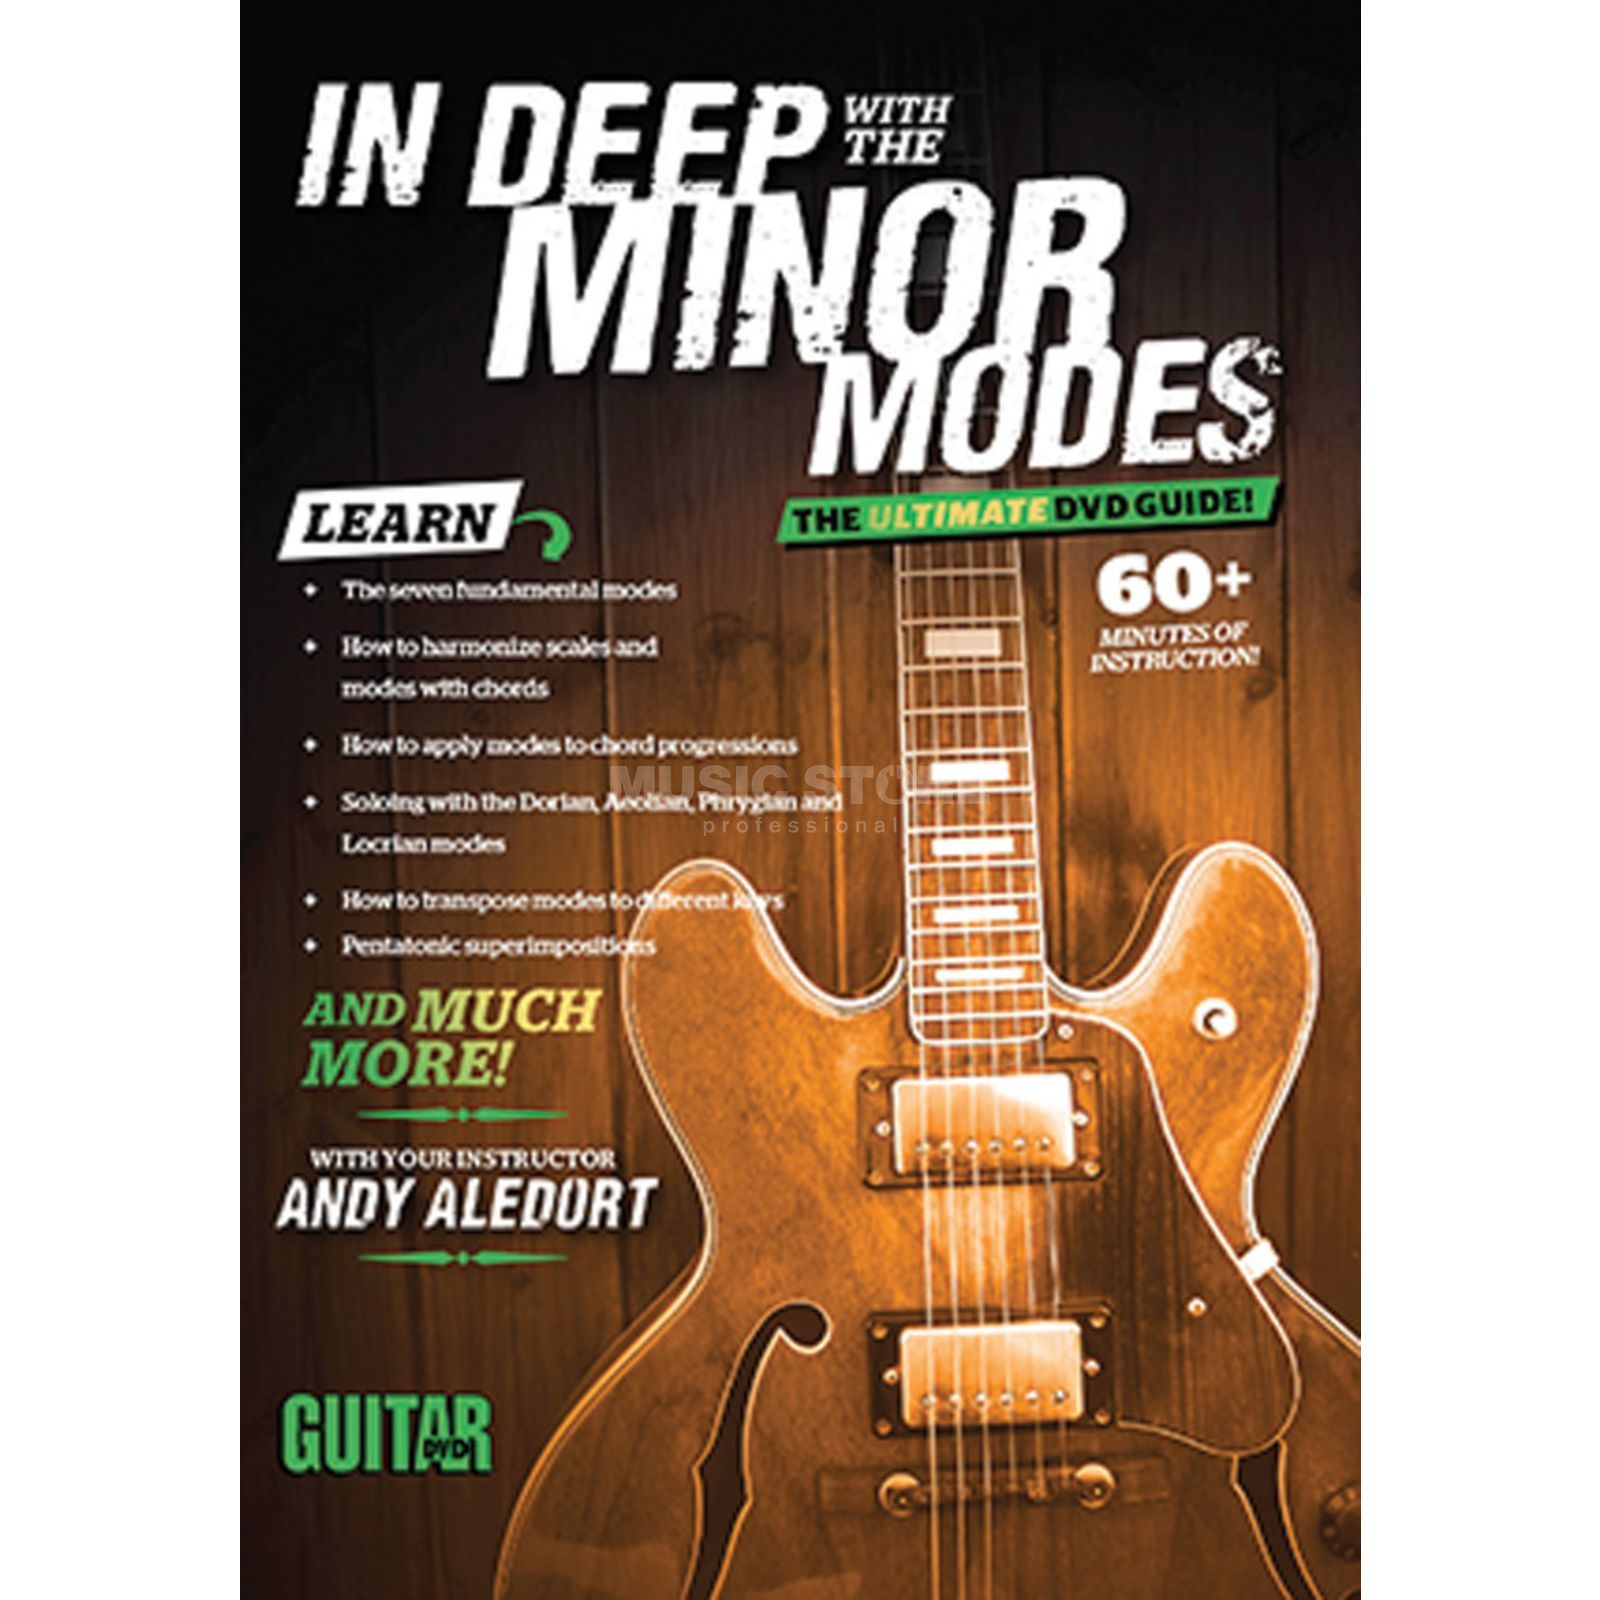 Alfred Music Guitar World: In Deep with the Minor Modes Imagem do produto